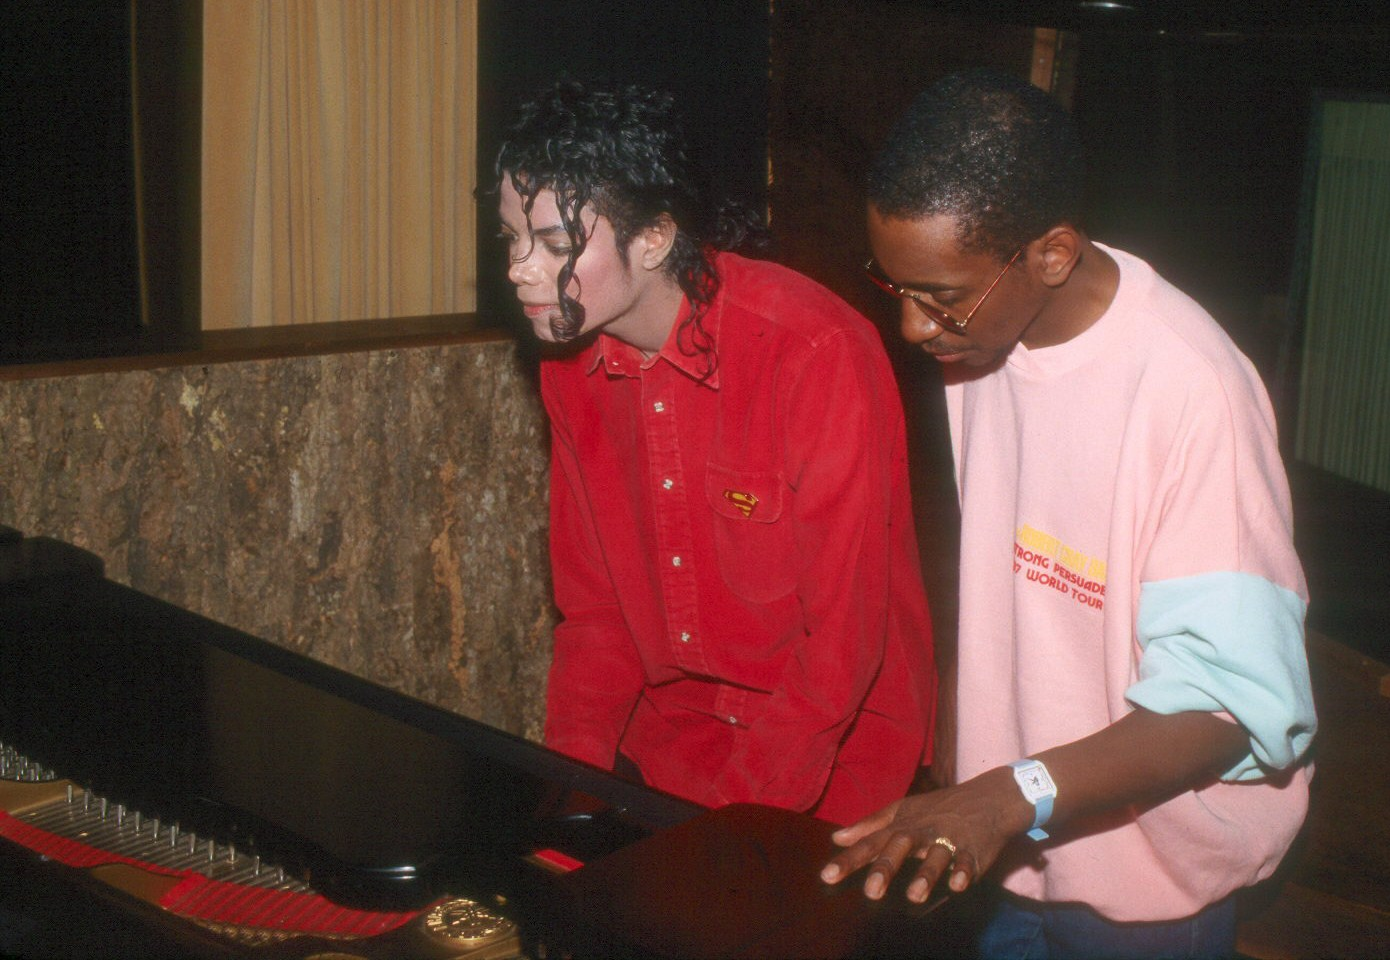 Michael plays the piano.